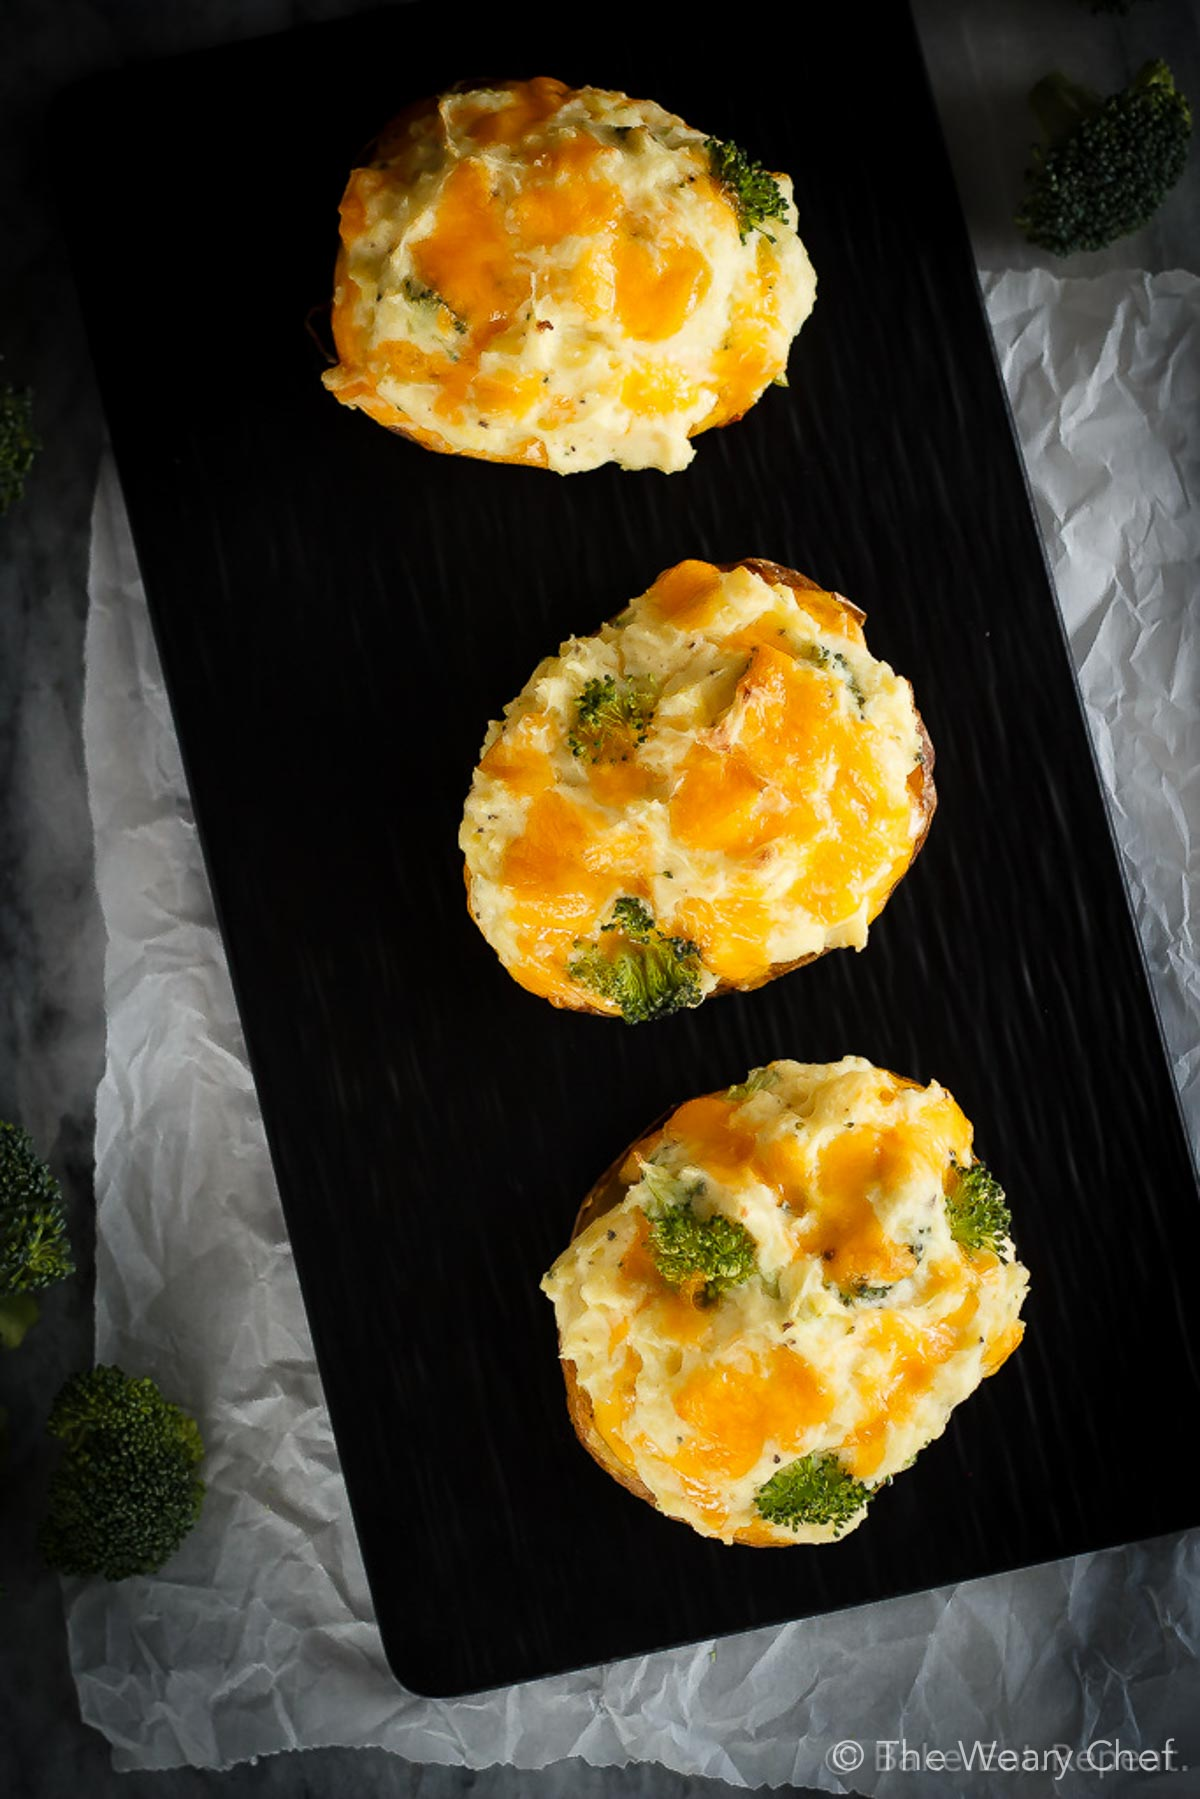 These twice baked potatoes filled with cheddar cheese and broccoli are the perfect side dish - they're easy to make and the whole family will love them! #bakedpotatoes #stuffedpotatoes #broccoli #cheddar